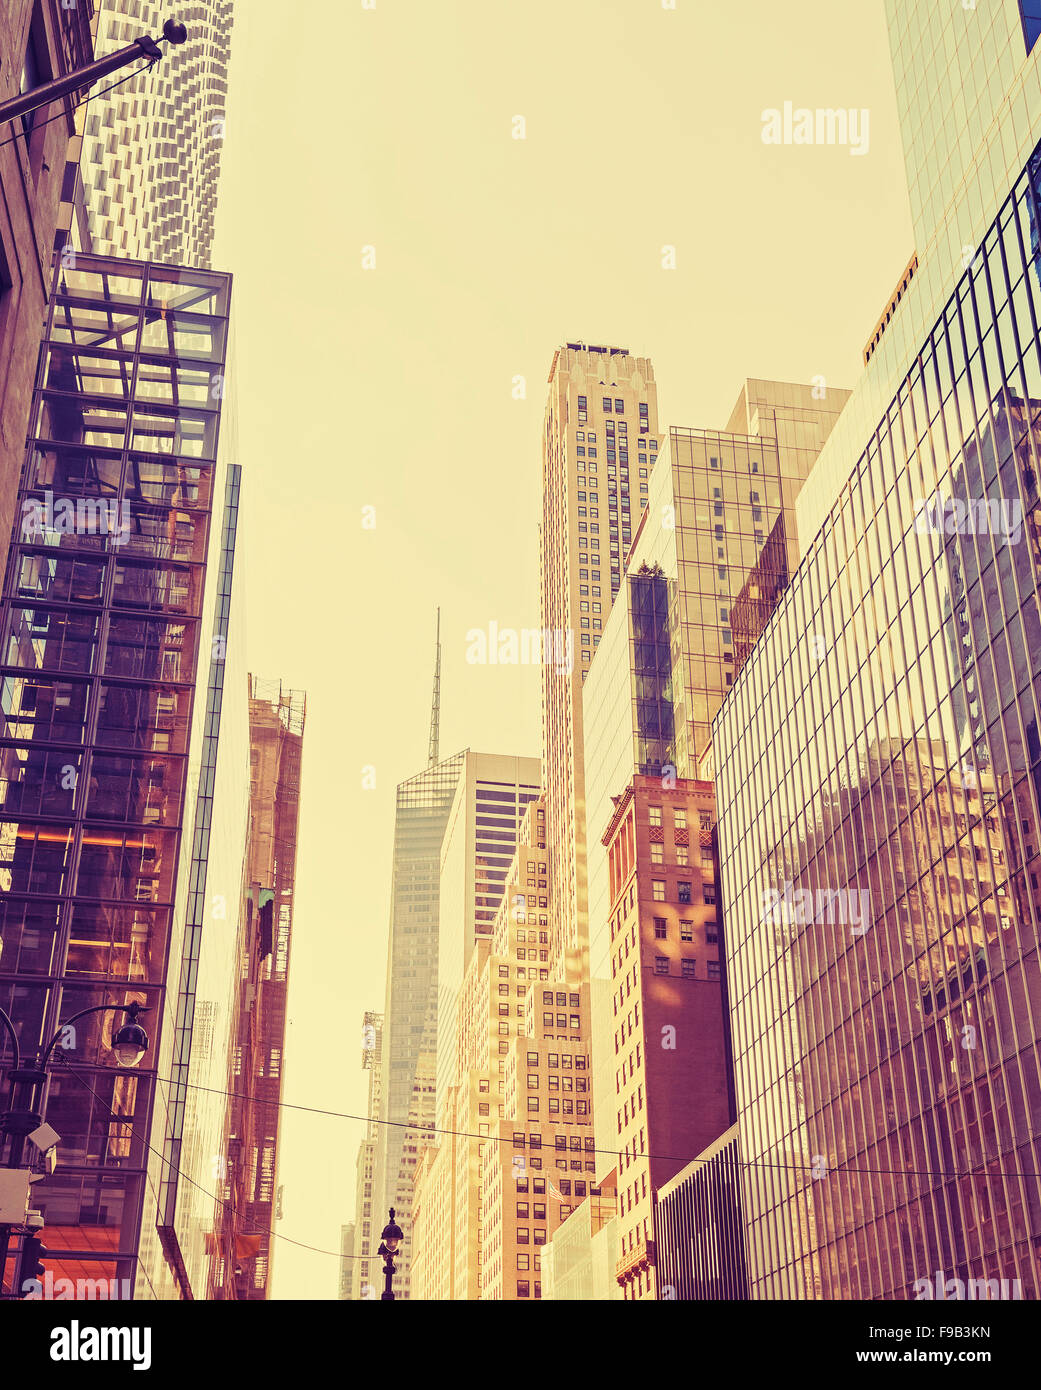 Vintage stylized photo of skyscrapers in Manhattan, New York City, USA. - Stock Image